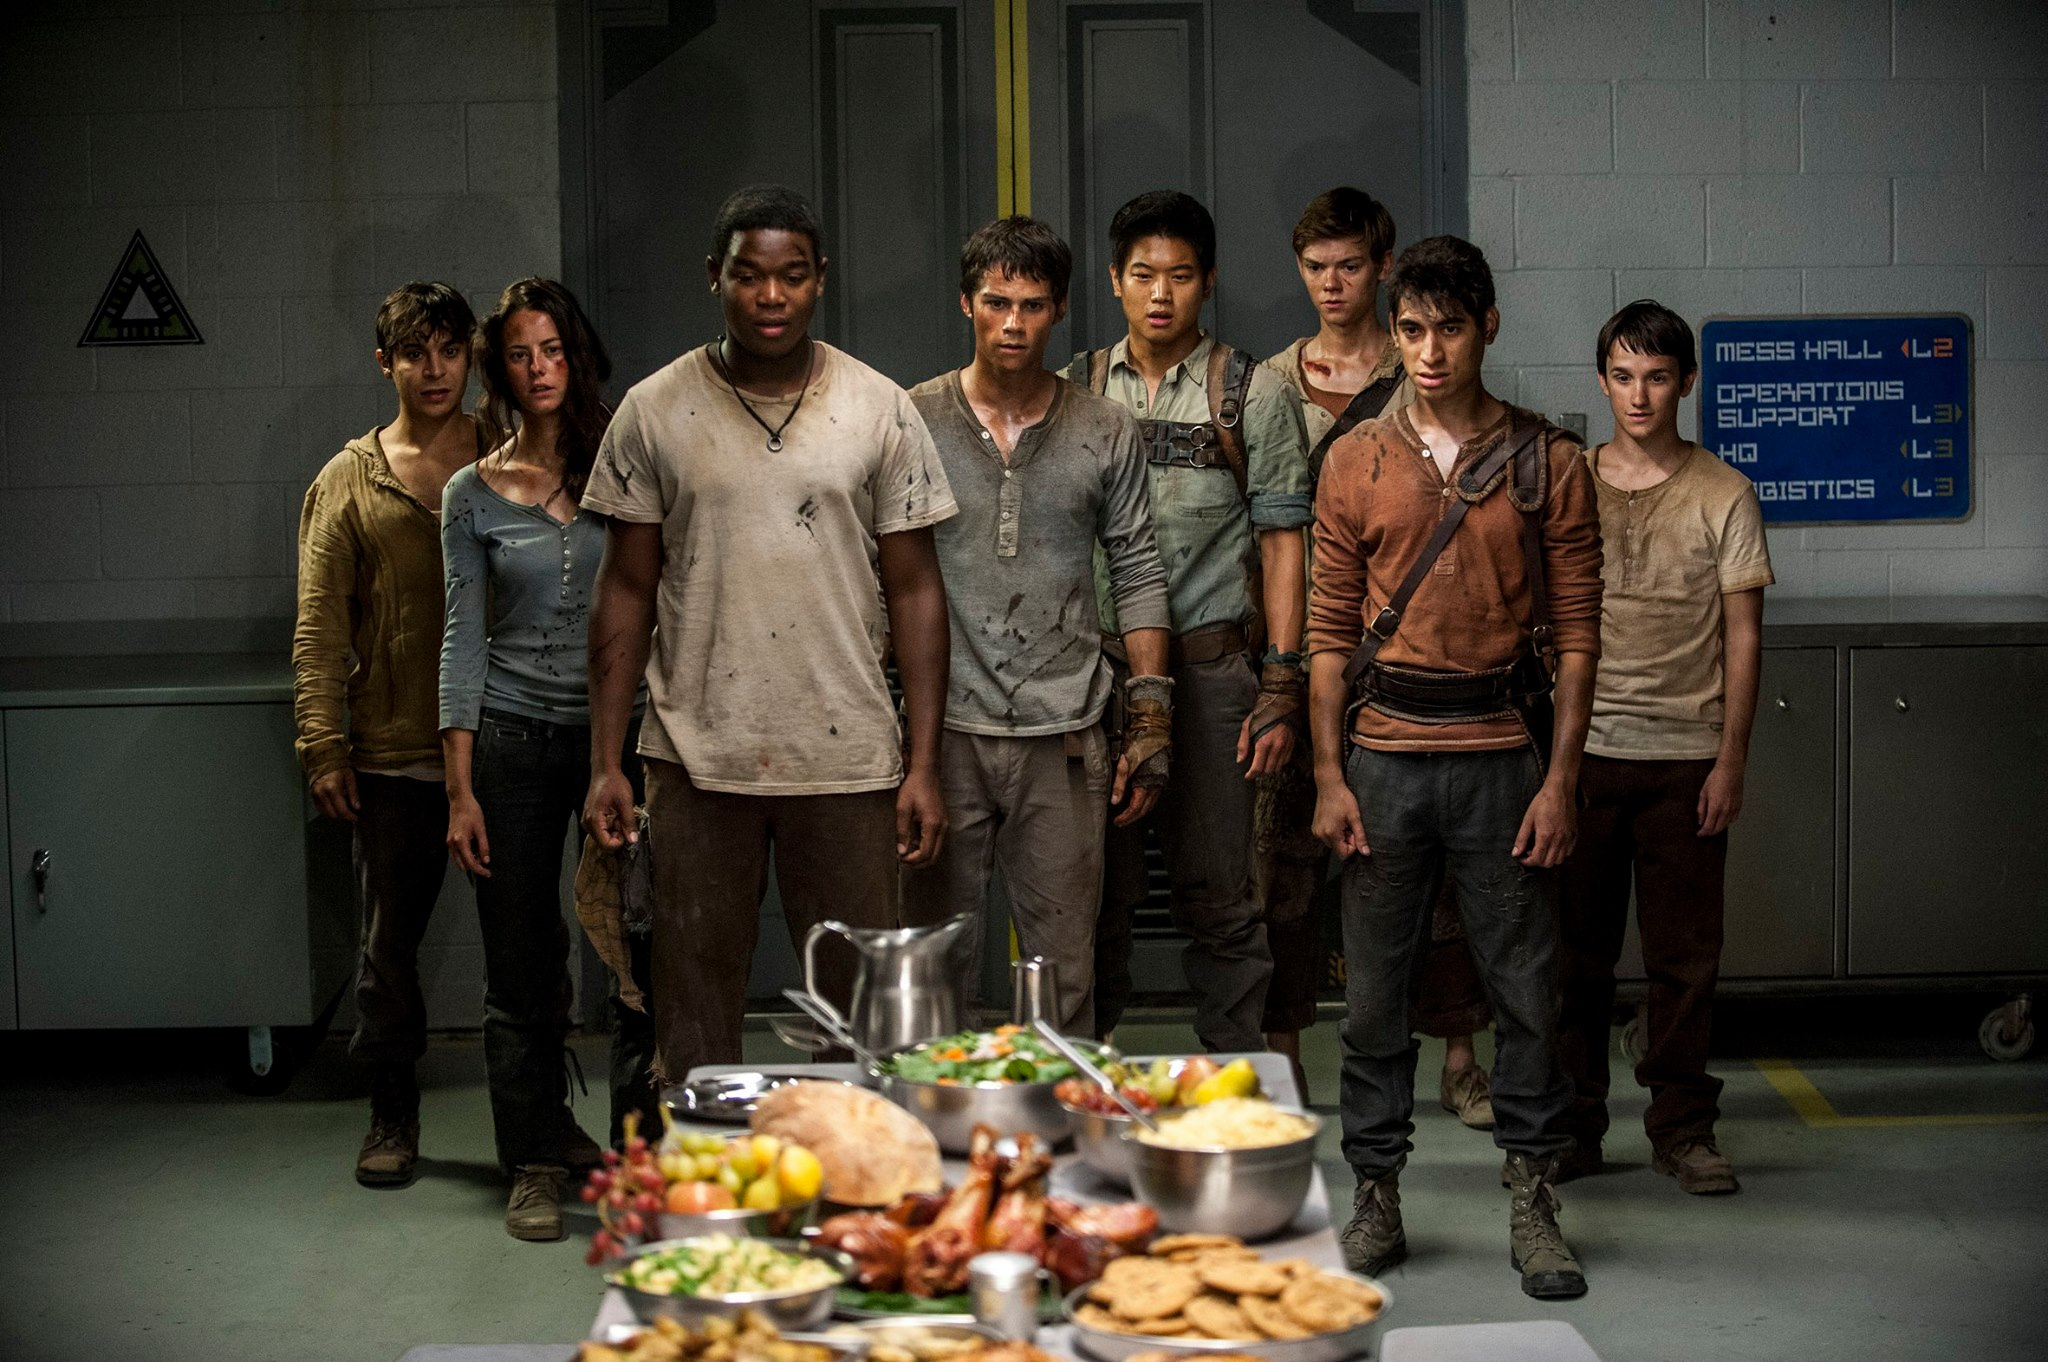 Maze Runner 20th century Fox from Facebook